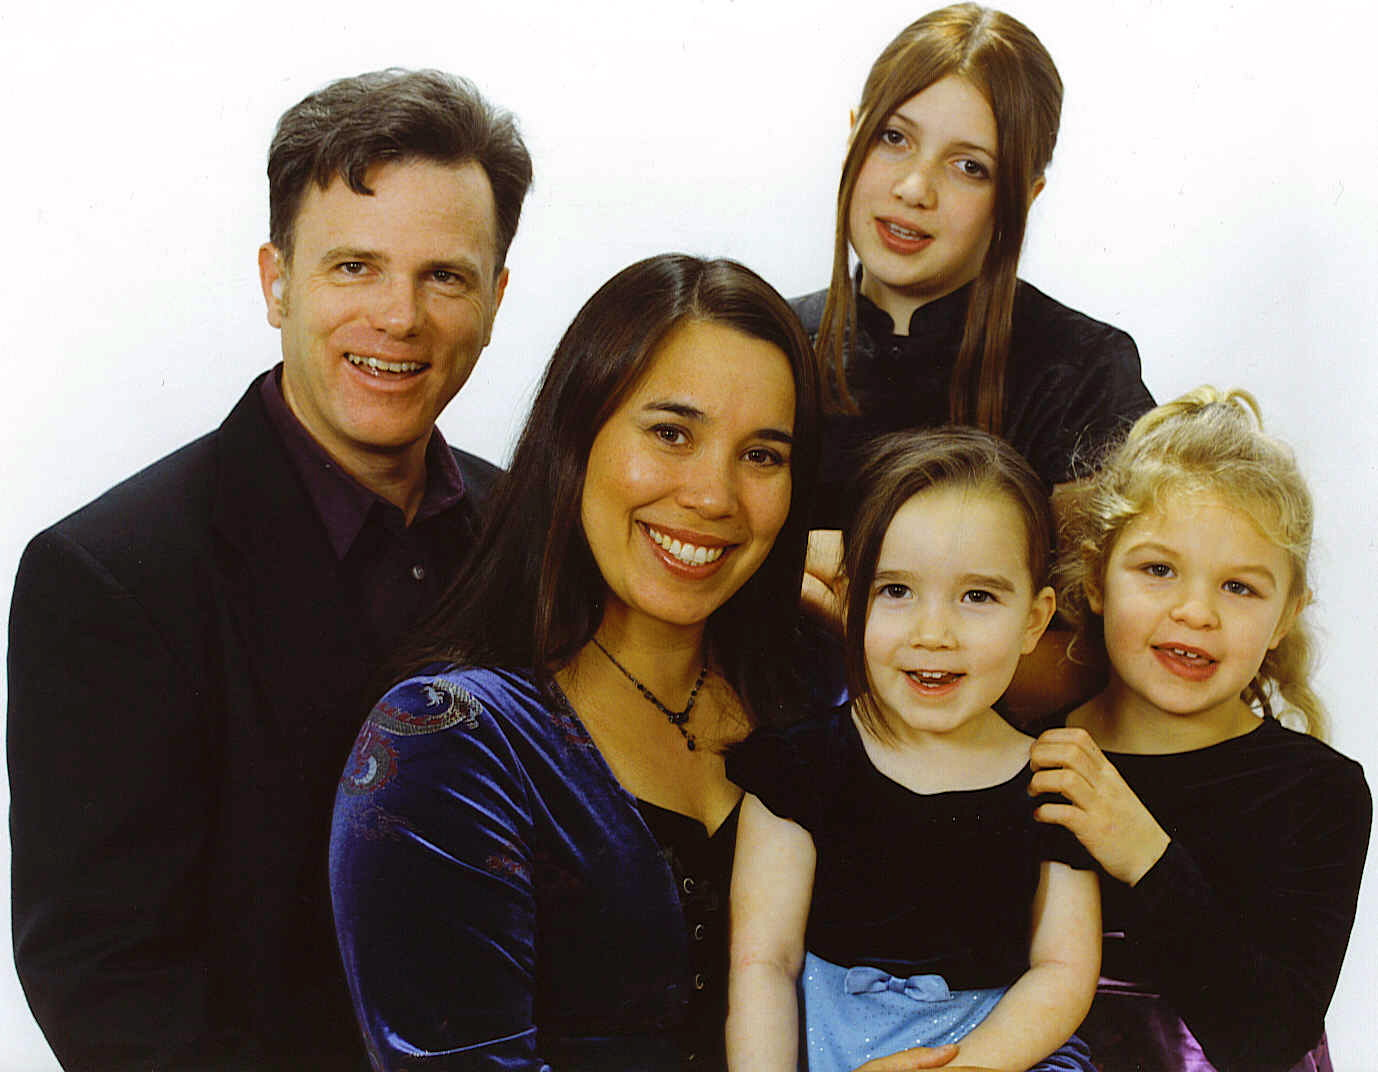 Katayama-Bass Family, L2R: William & Morgan in back; Kristina, Talia, & Kate in front. Thanksgiving 2005. Woo Hoo!